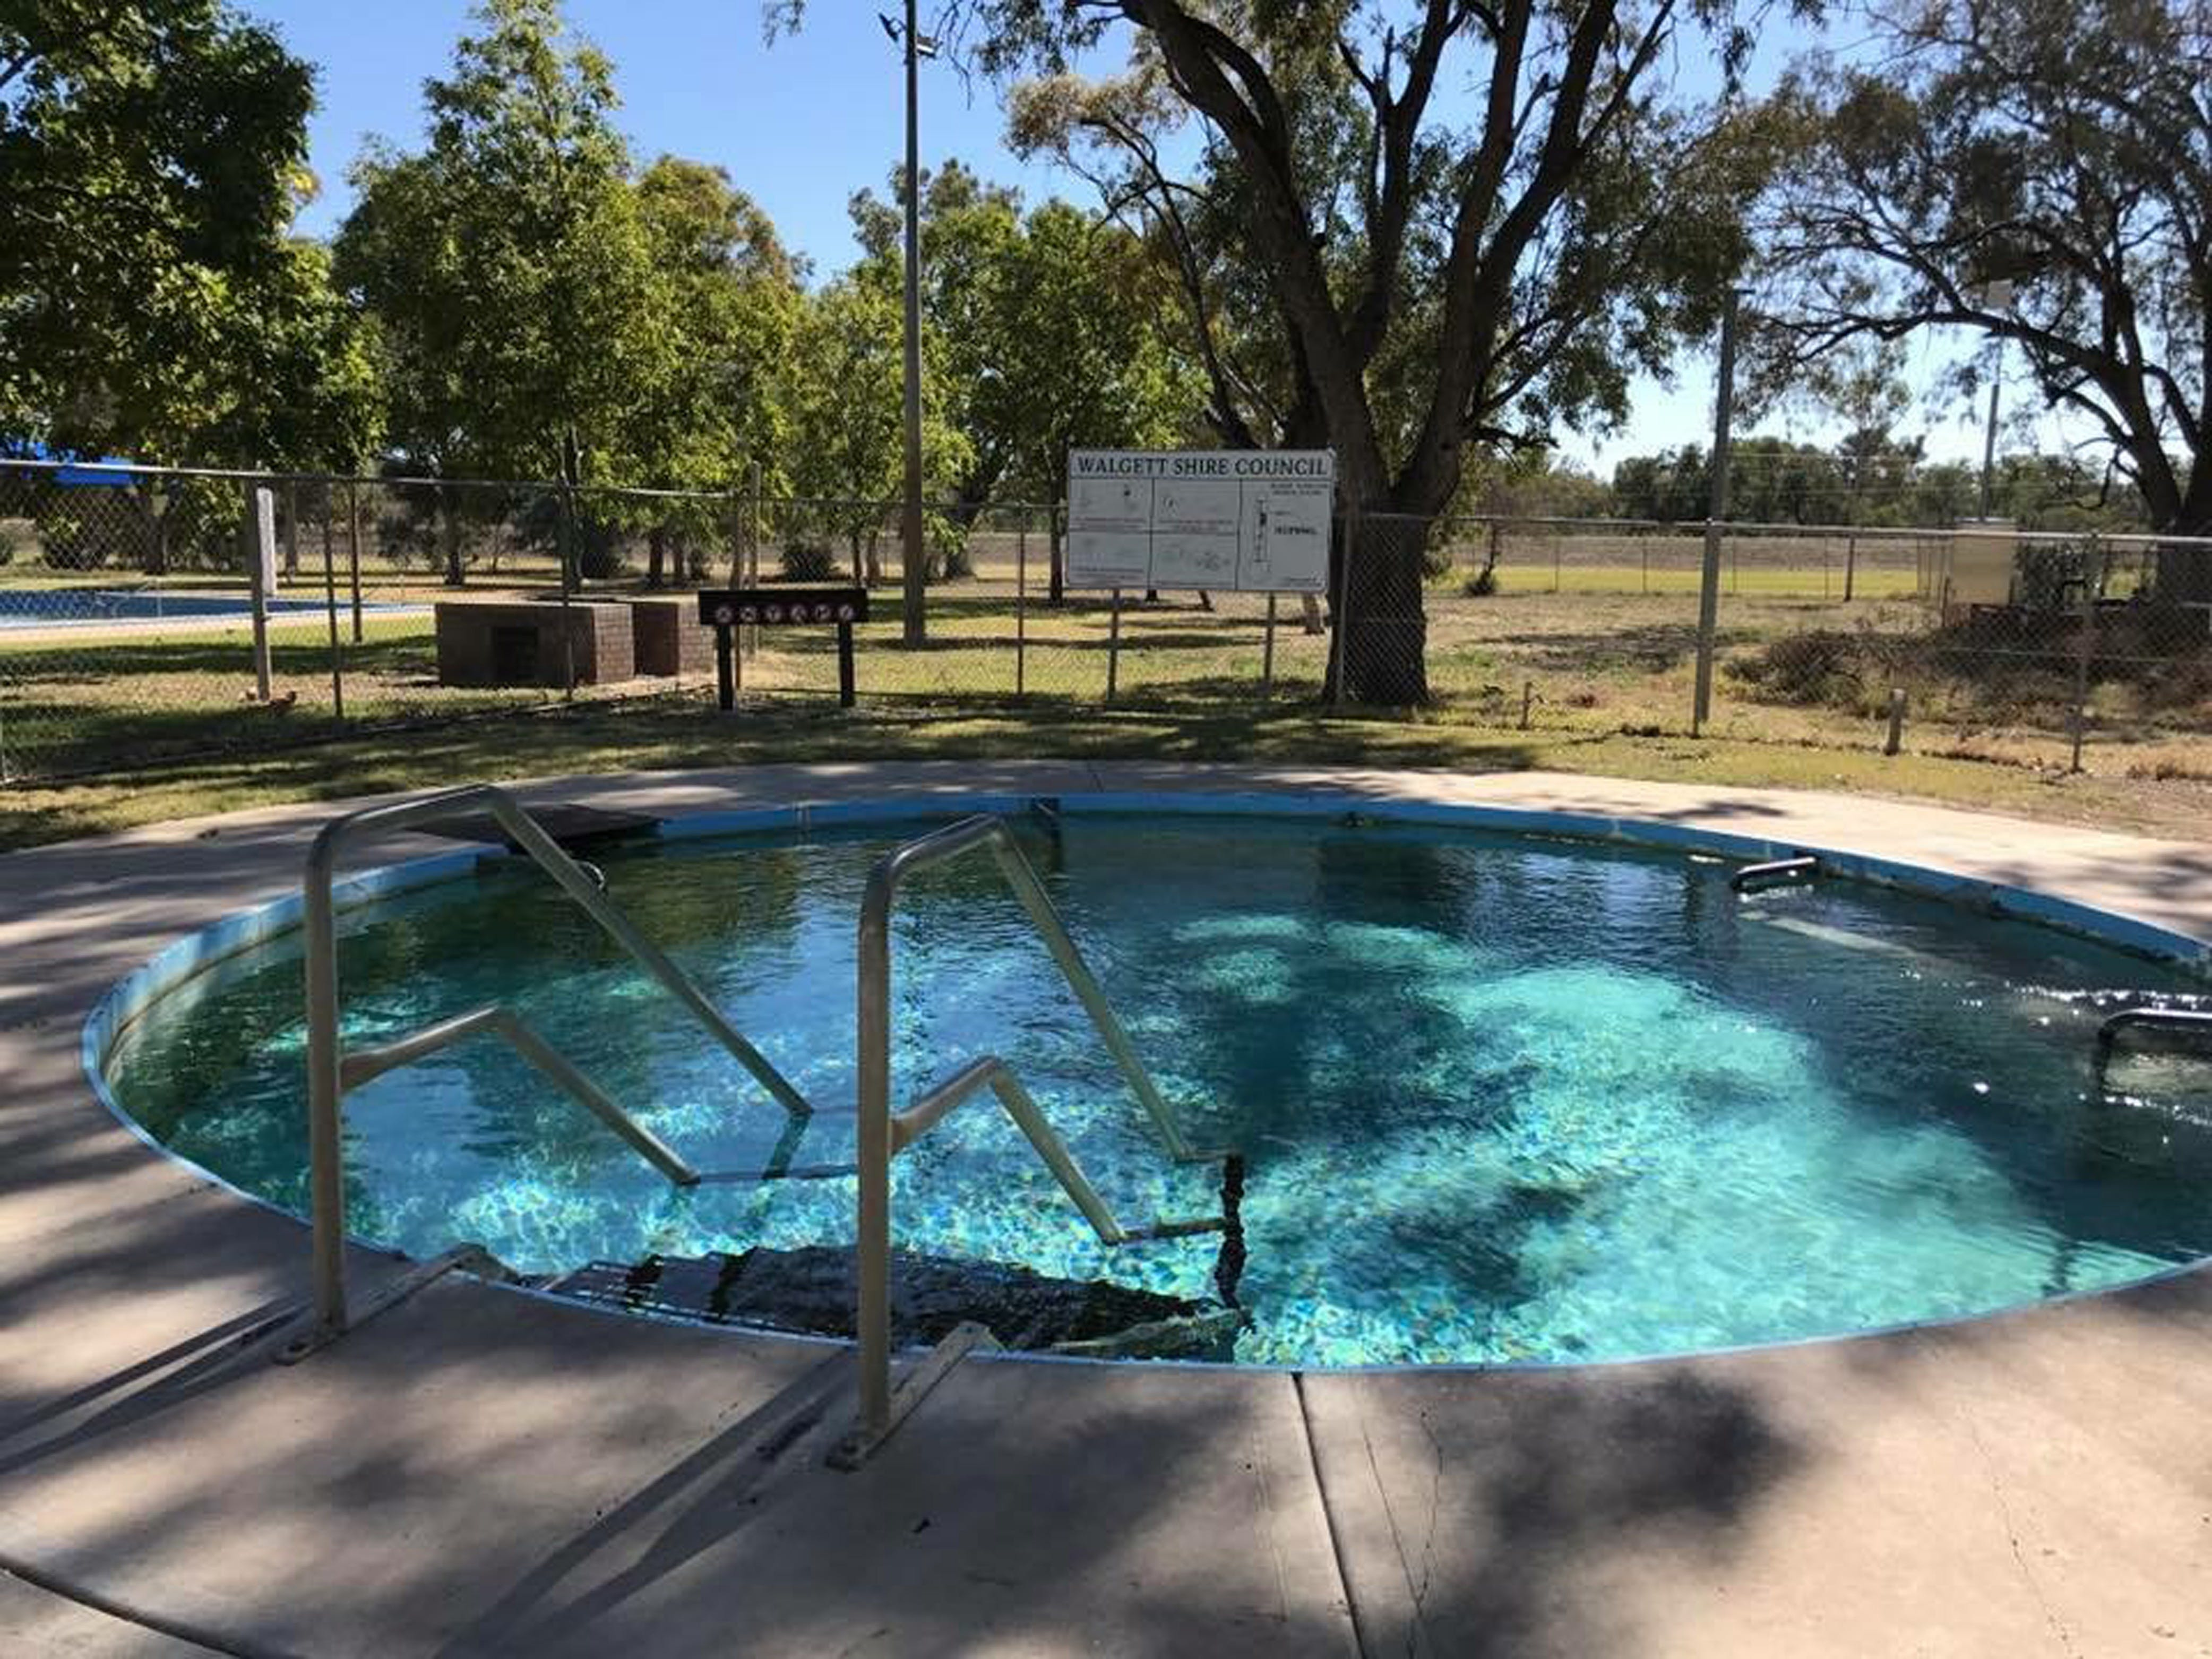 Walgett Artesian Bore Baths - Accommodation Port Macquarie